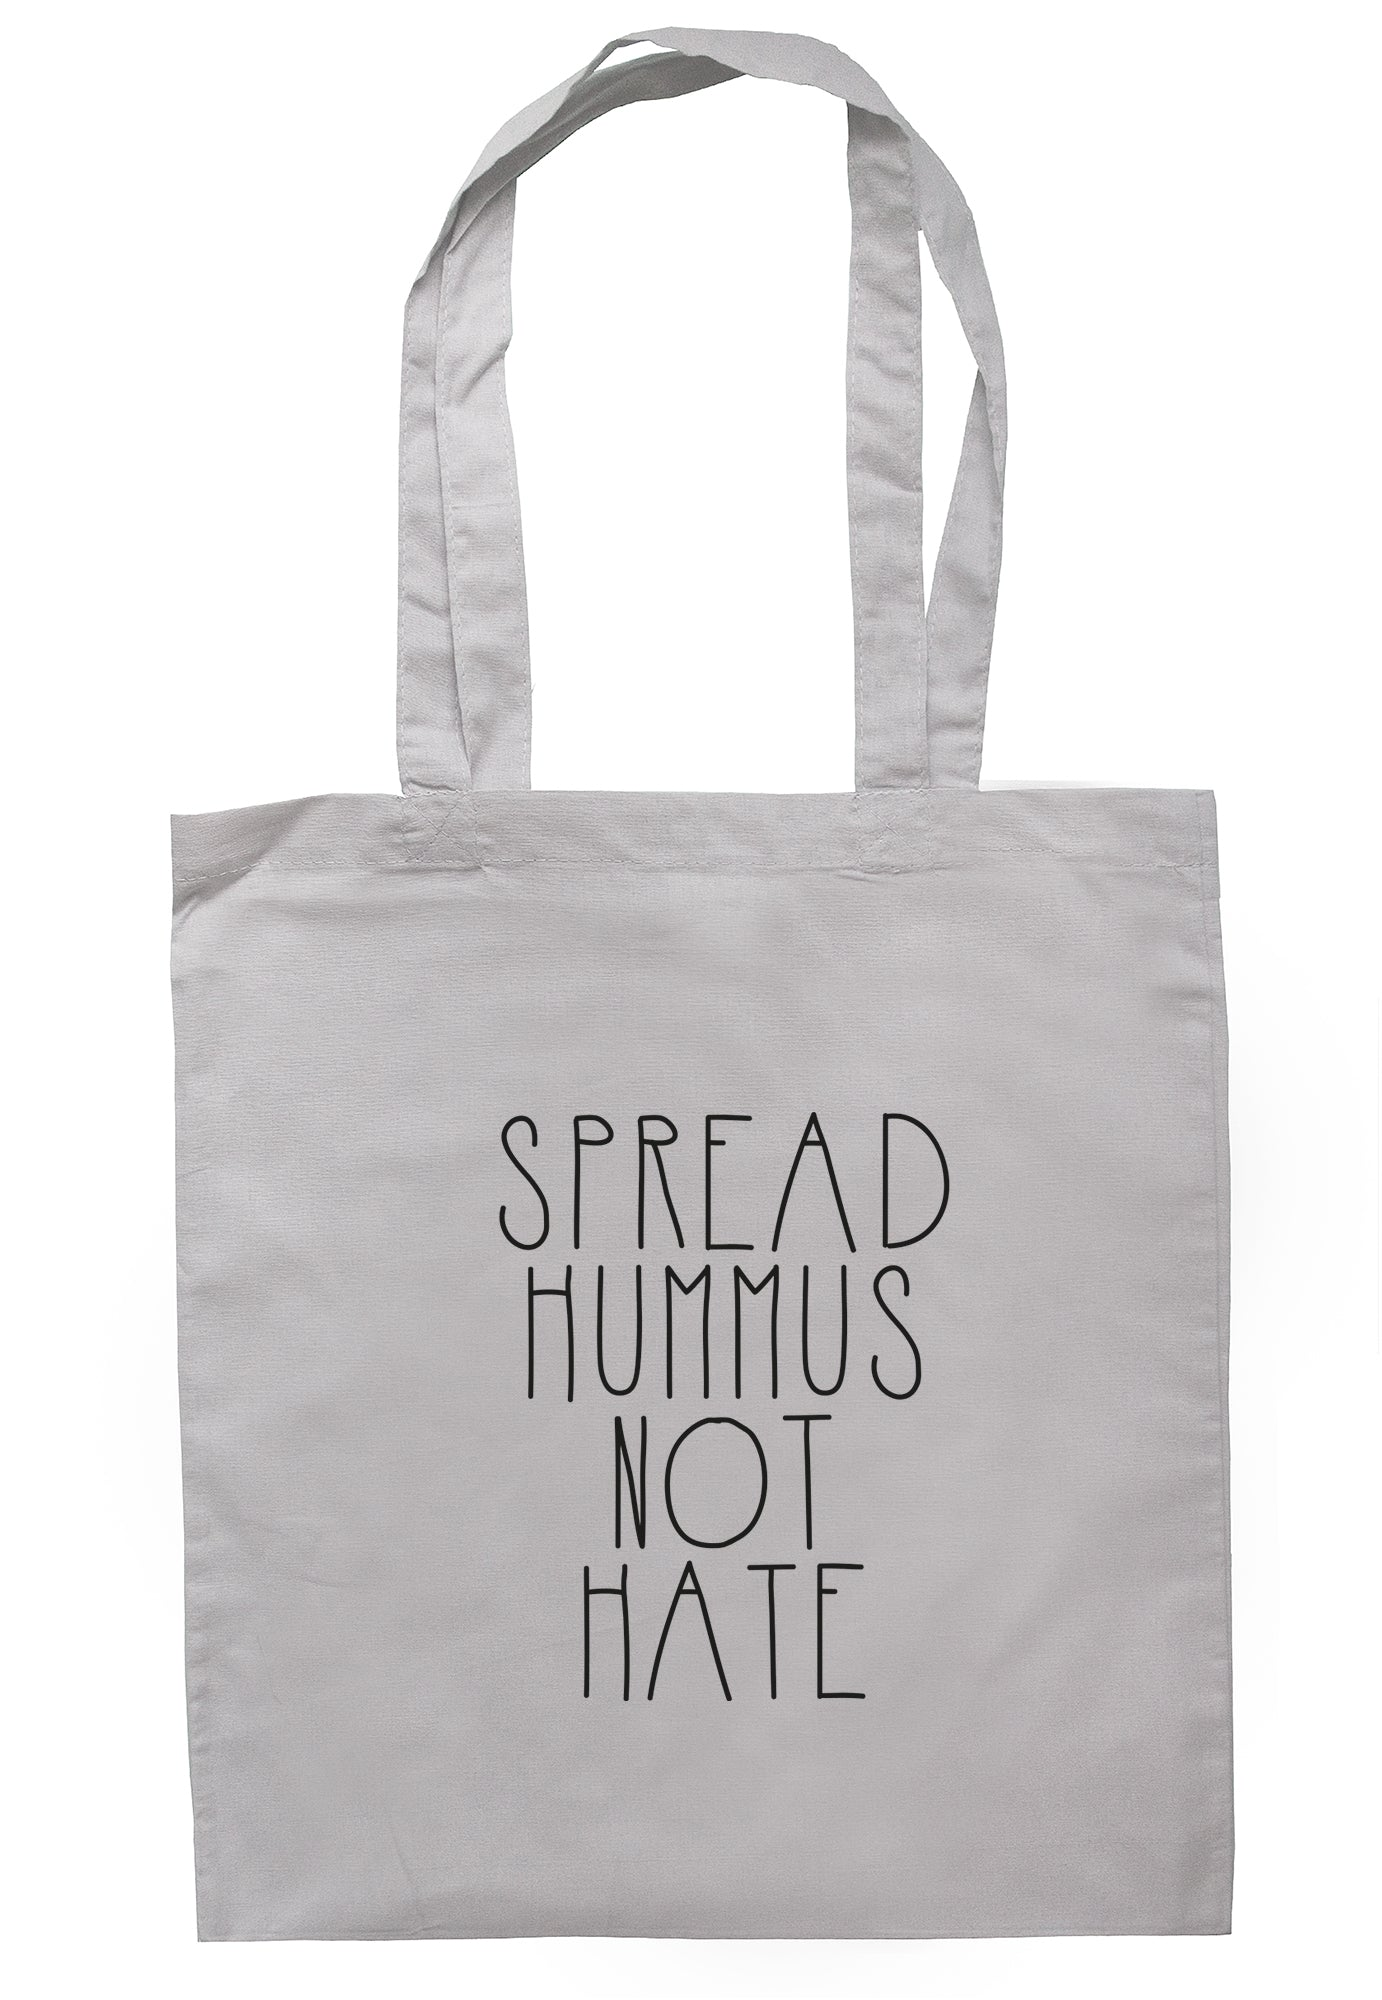 Spread Hummus Not Hate Tote Bag TB1949 - Illustrated Identity Ltd.